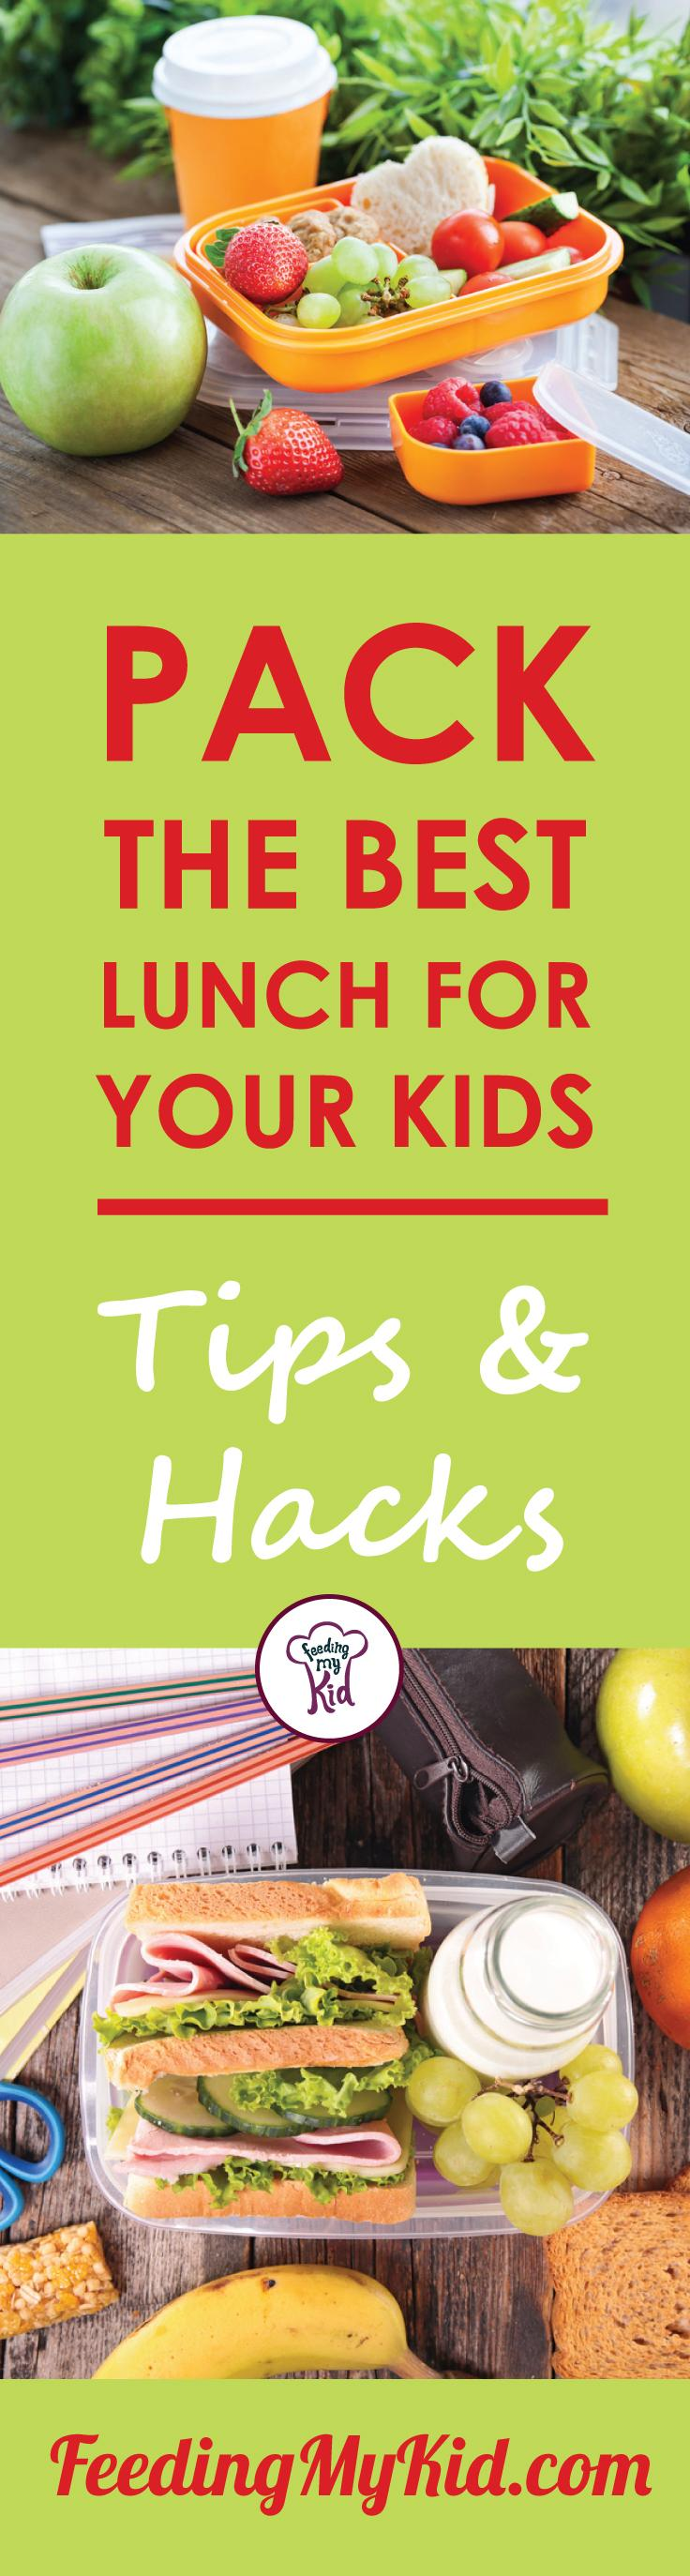 This is a must pin! Check out these amazing lunch box ideas! They'll help you pack your child's lunches. These are great tips! Feeding My Kid is a filled with all the information you need about how to raise your kids, from healthy tips to nutritious recipes. #FeedingMyKid #lunch #lunchboxideas #packlunch